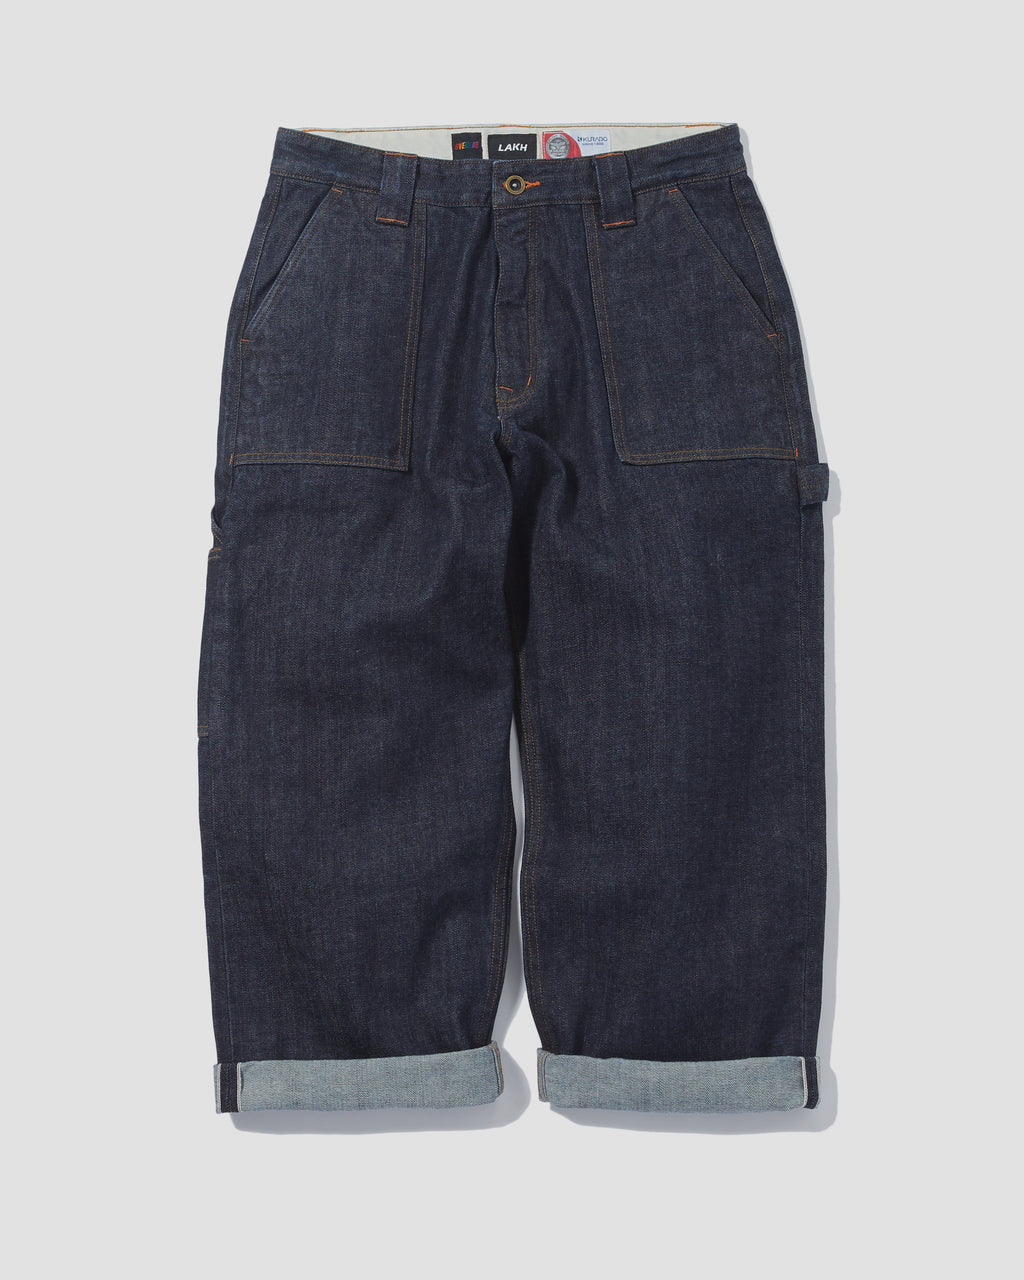 LAKH x OVERLAB Worker Pants - Navy